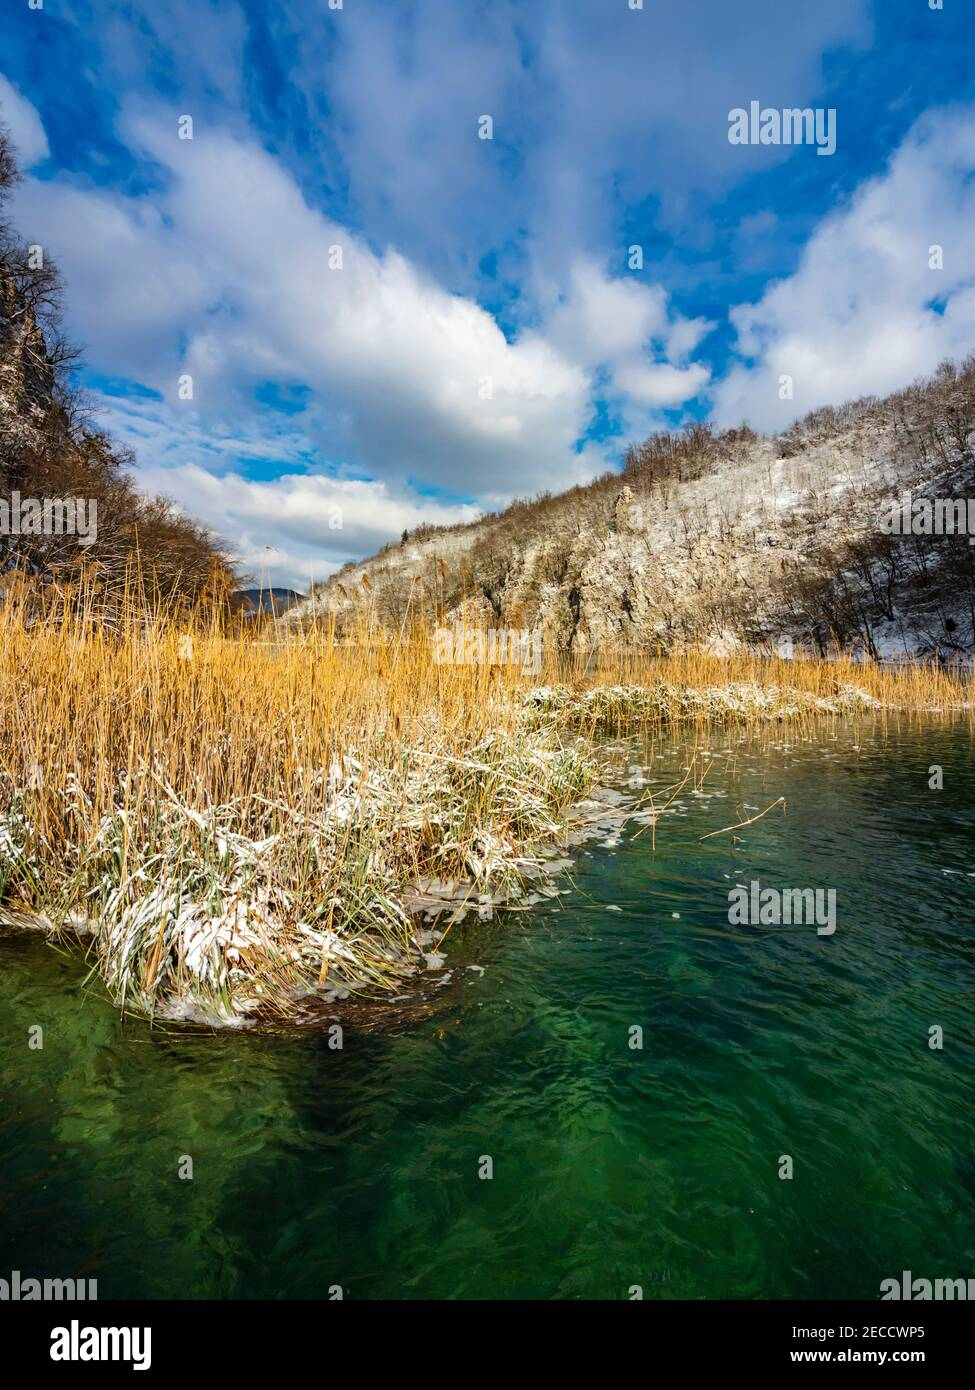 National park Plitvice lakes Croatia Europe late Winter under covered cover snow ice waterflow water flowing flow Stock Photo